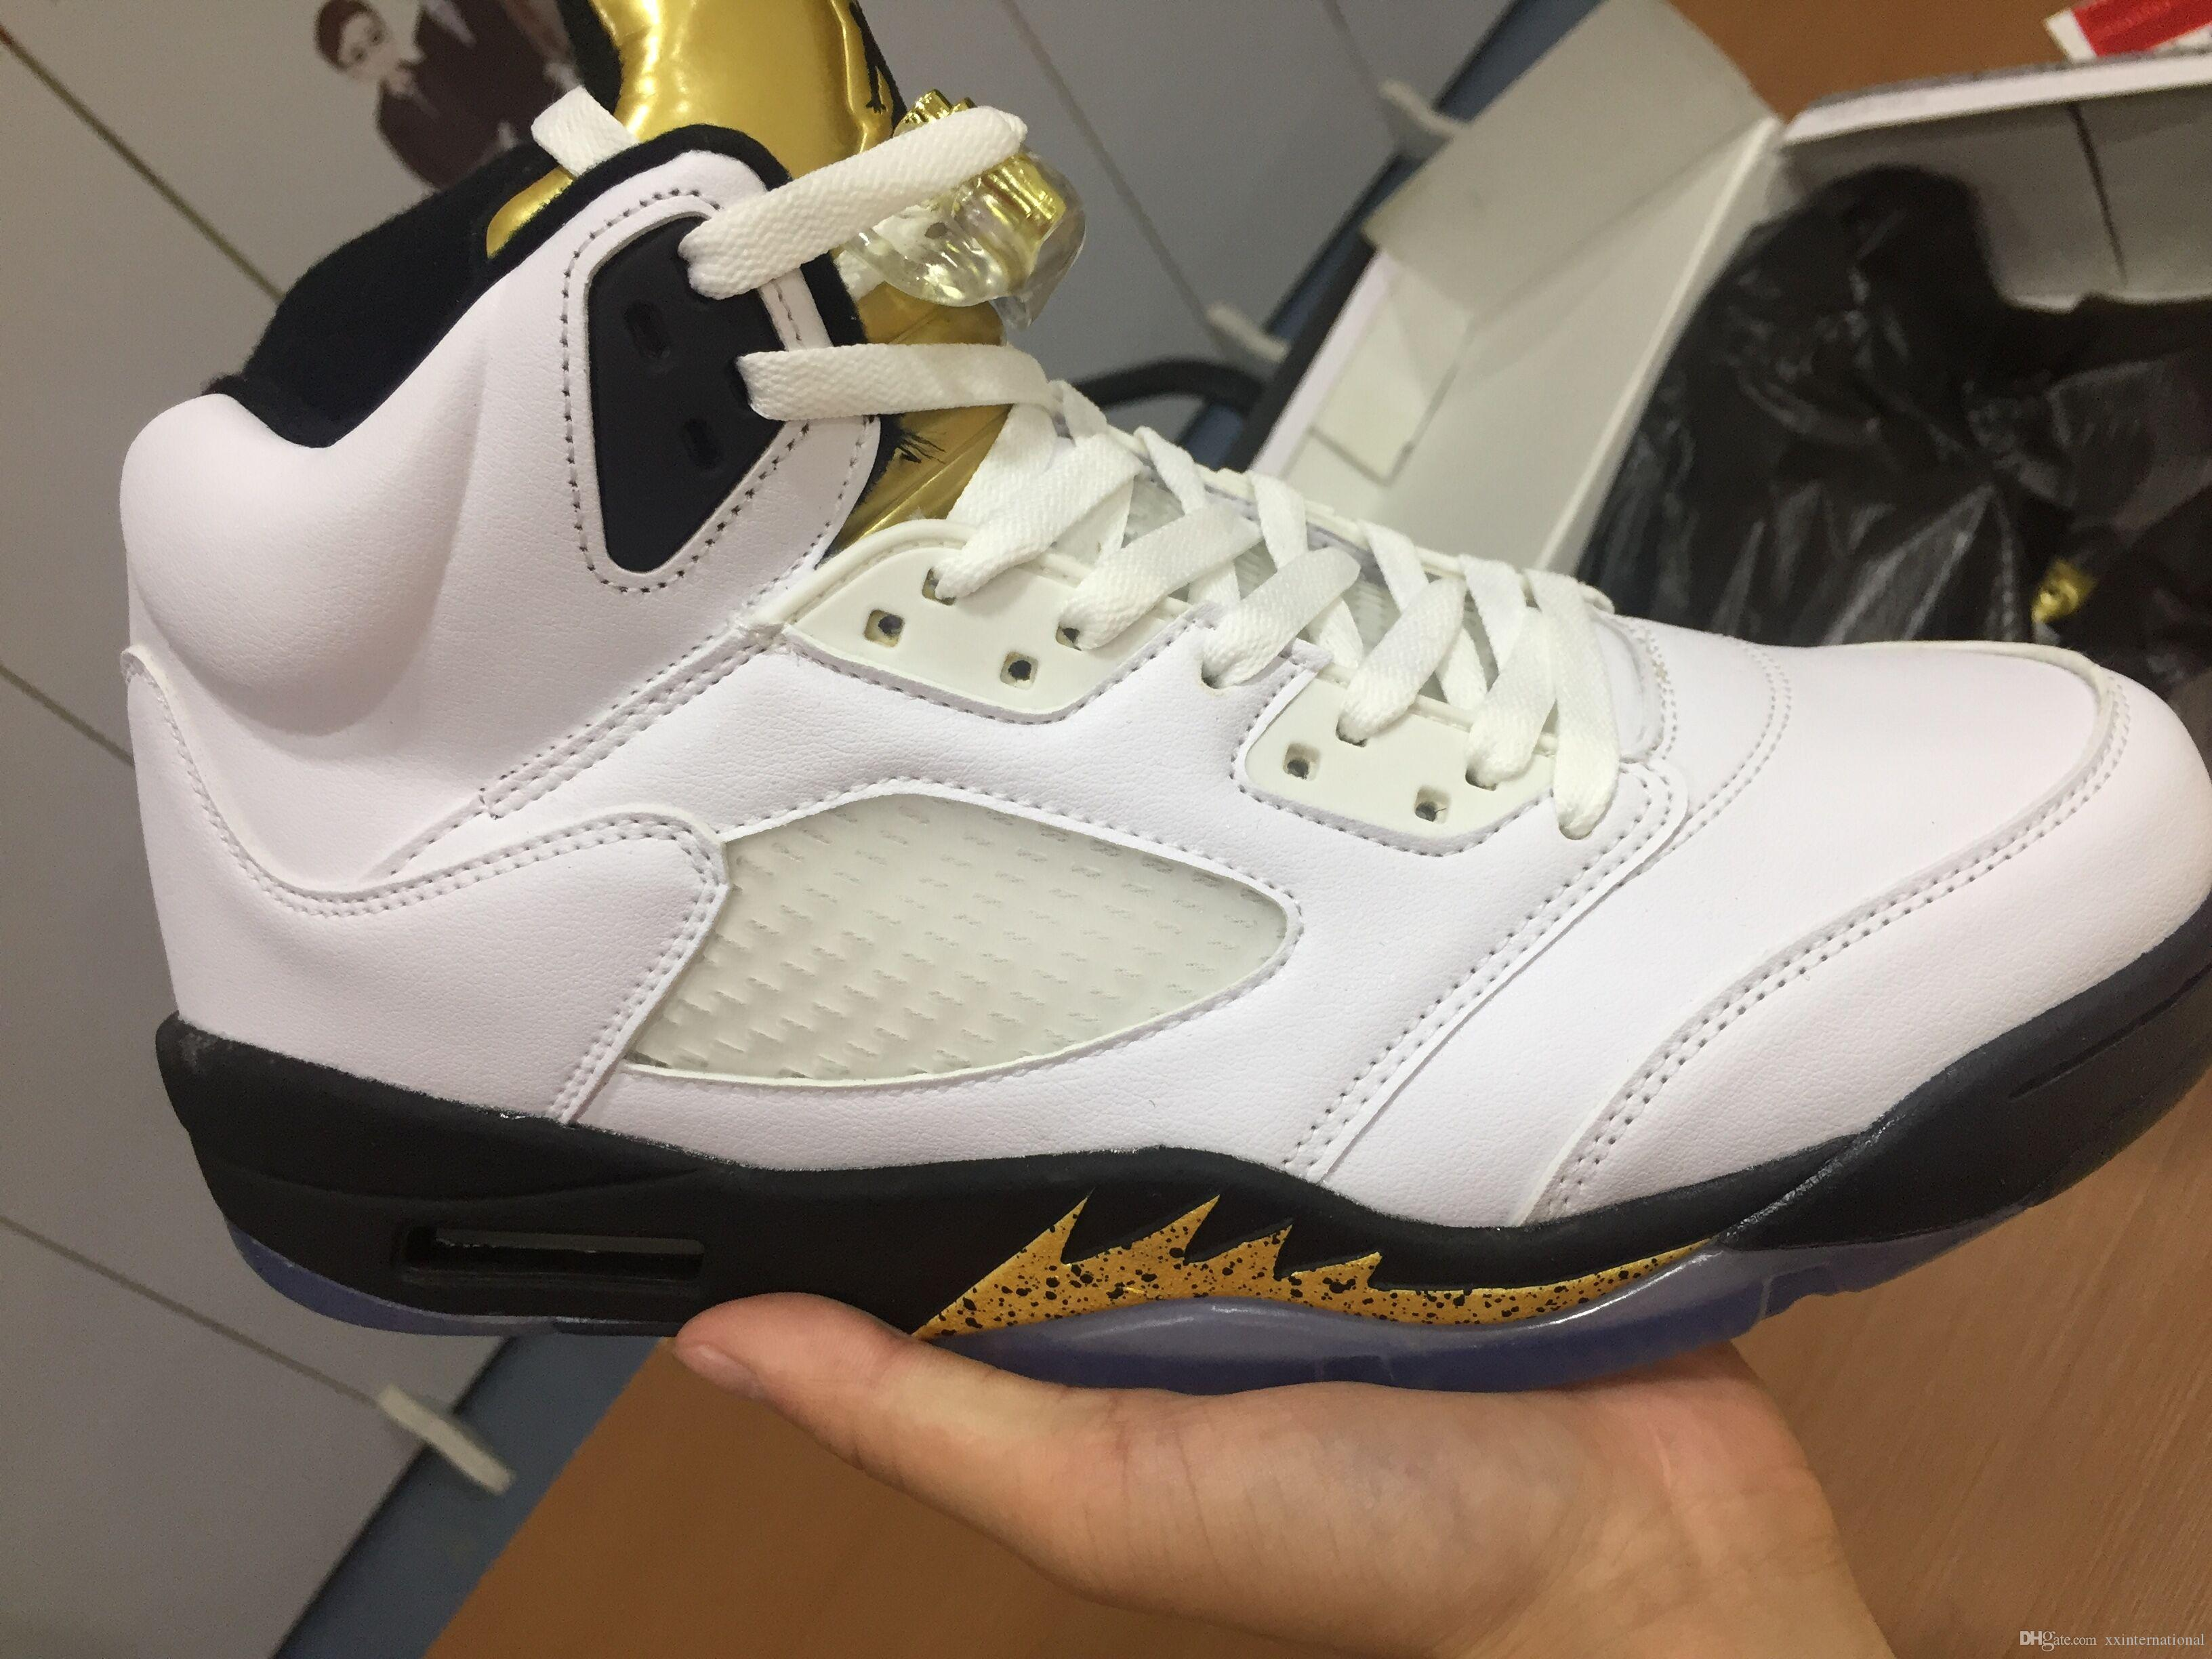 huge selection of 4c723 de3c9 New Ordinary Sneakers Air Retro 5 Olympic Metallic Gold Shoes For  Basketball Sports 2016 Retros 5s 136027 133 Outdoor Shoes With Box Sports  Shoes ...